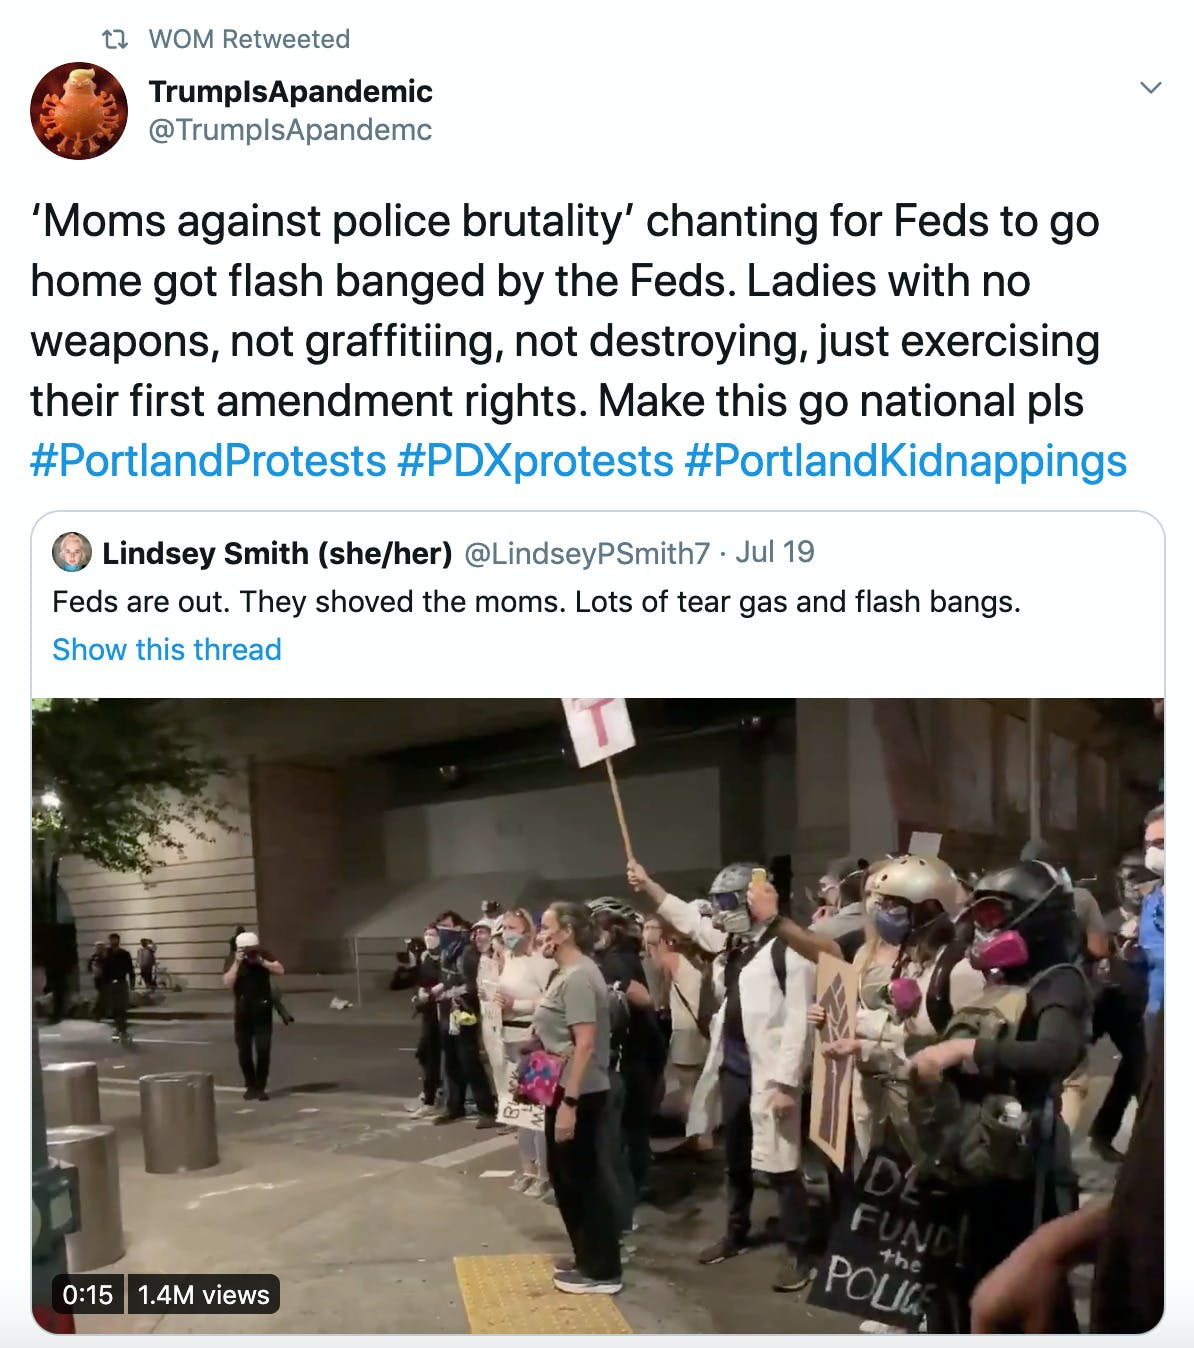 'Moms against police brutality' chanting for Feds to go home got flash banged by the Feds. Ladies with no weapons, not graffitiing, not destroying, just exercising their first amendment rights. Make this go national pls #PortlandProtests #PDXprotests #PortlandKidnappings